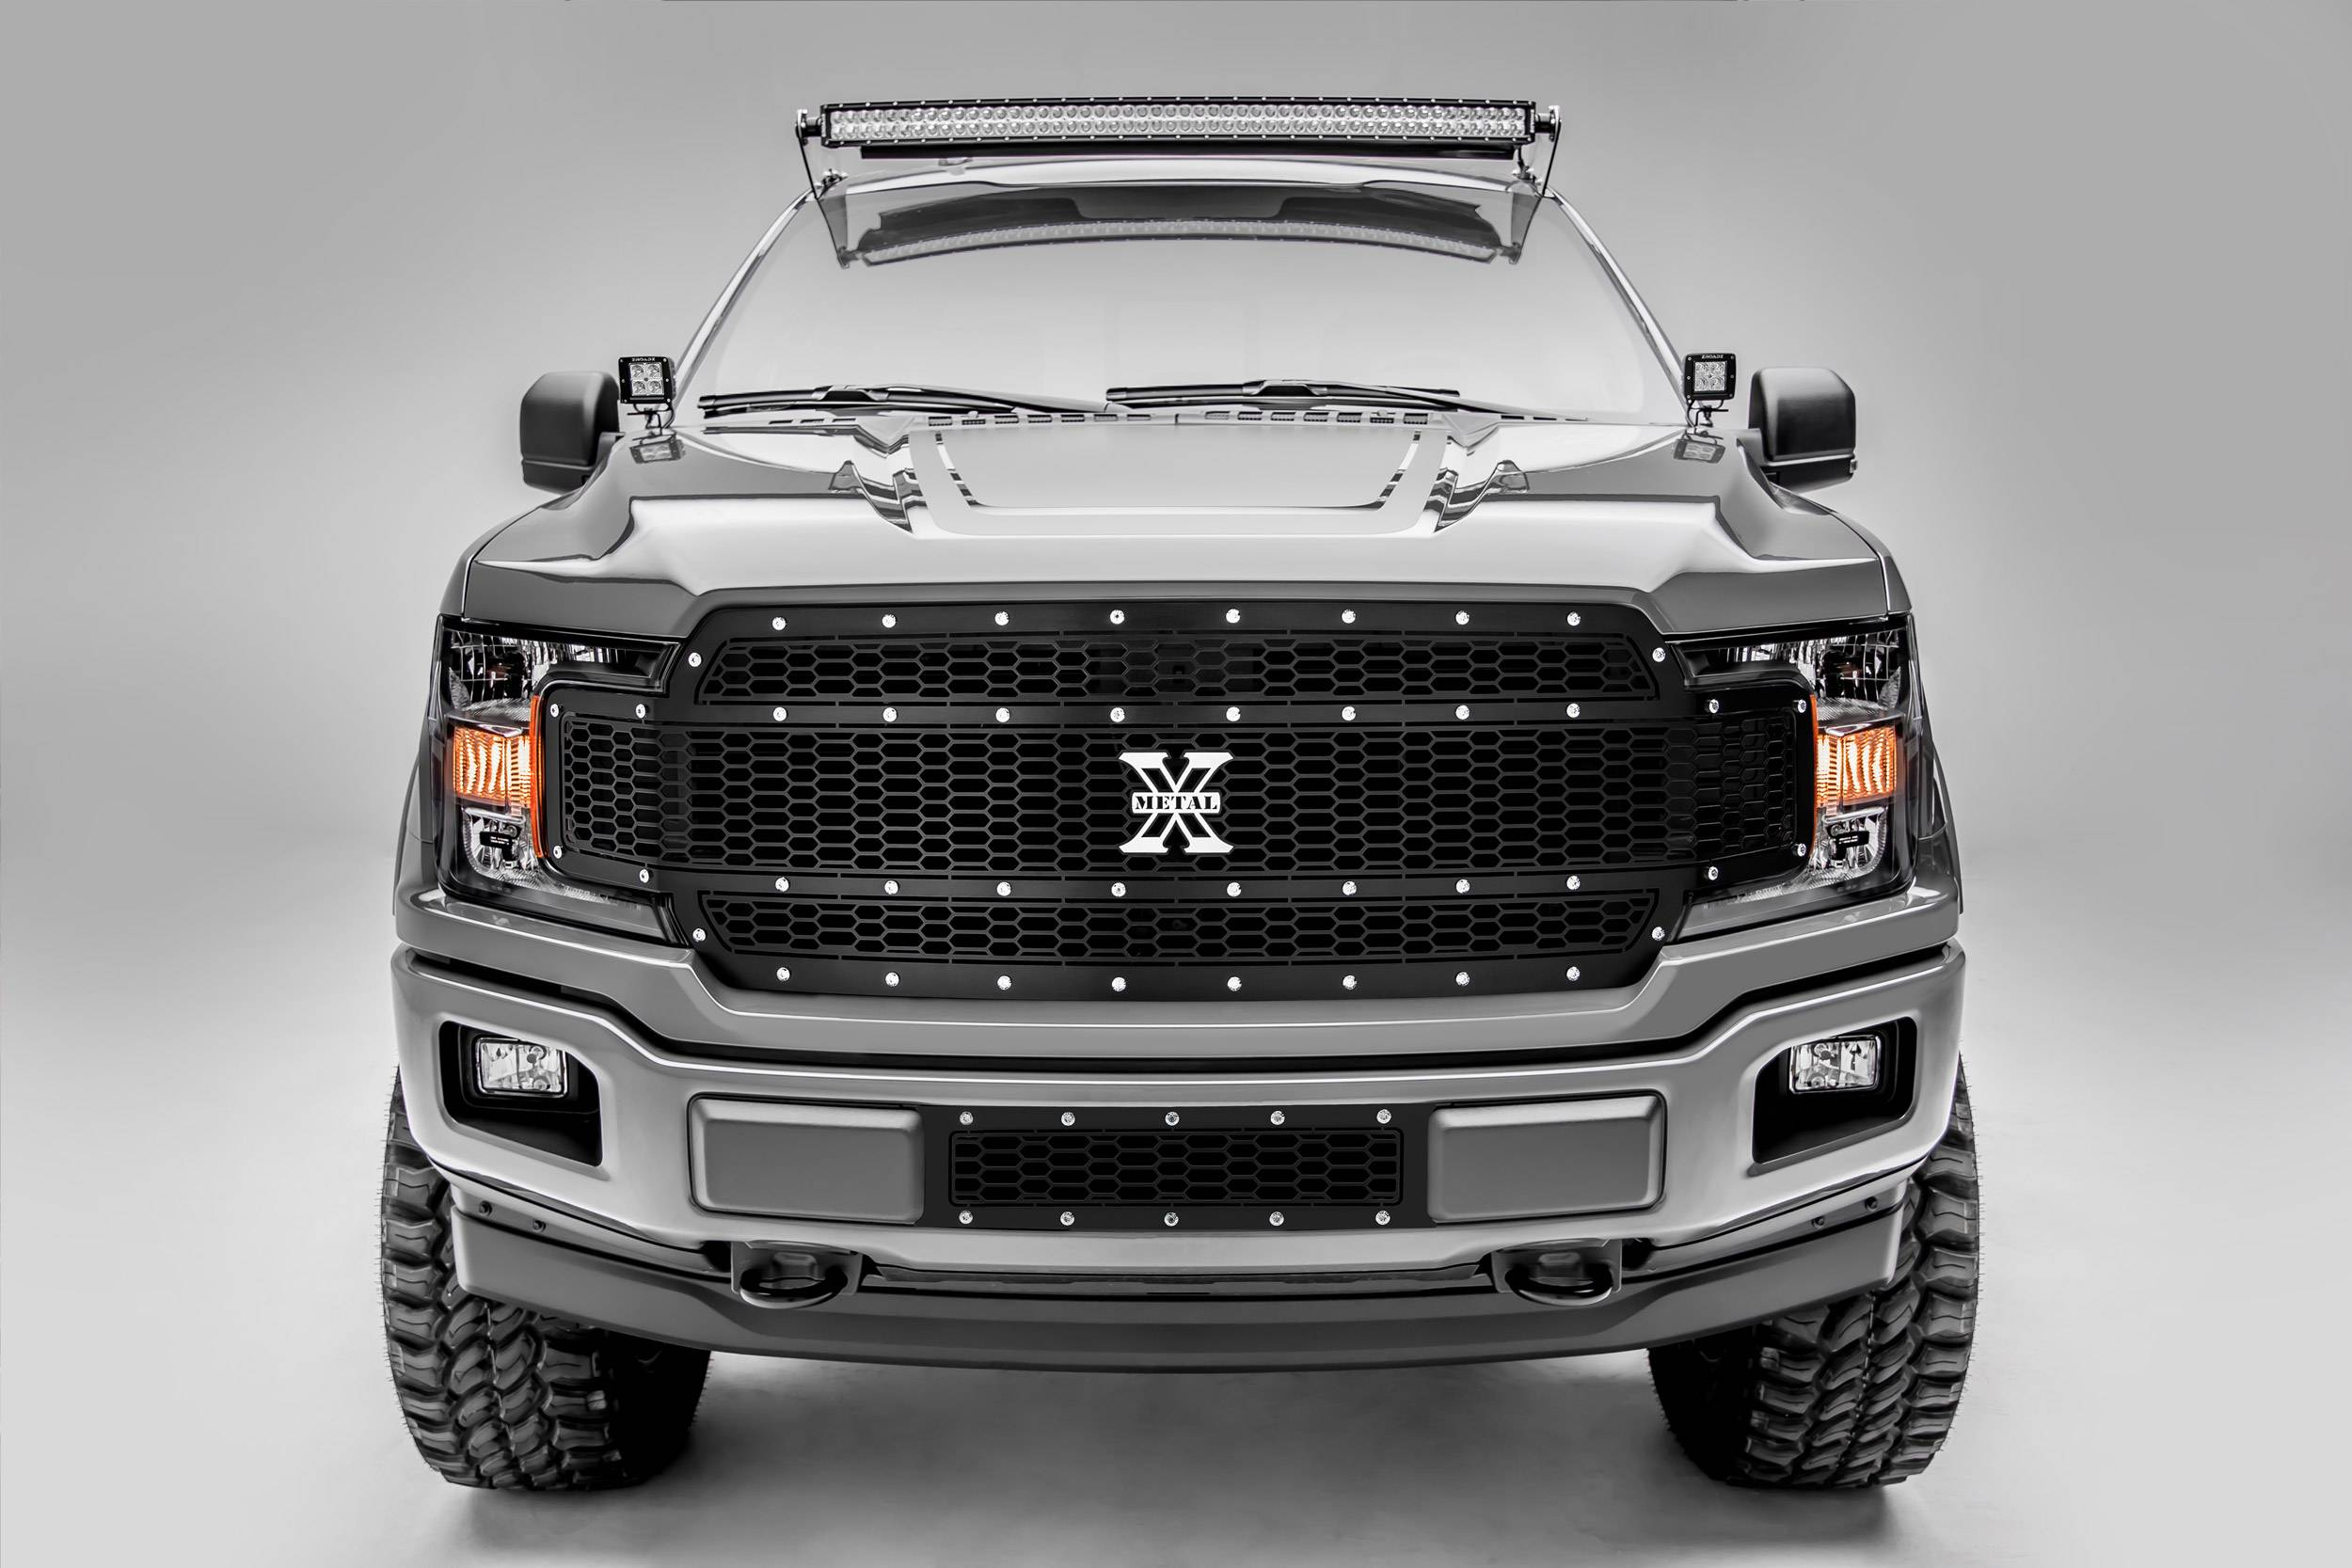 T-REX Grilles - 2018-2020 F-150 Laser X Grille, Black, 1 Pc, Replacement, Chrome Studs, Does Not Fit Vehicles with Camera - PN #7715841